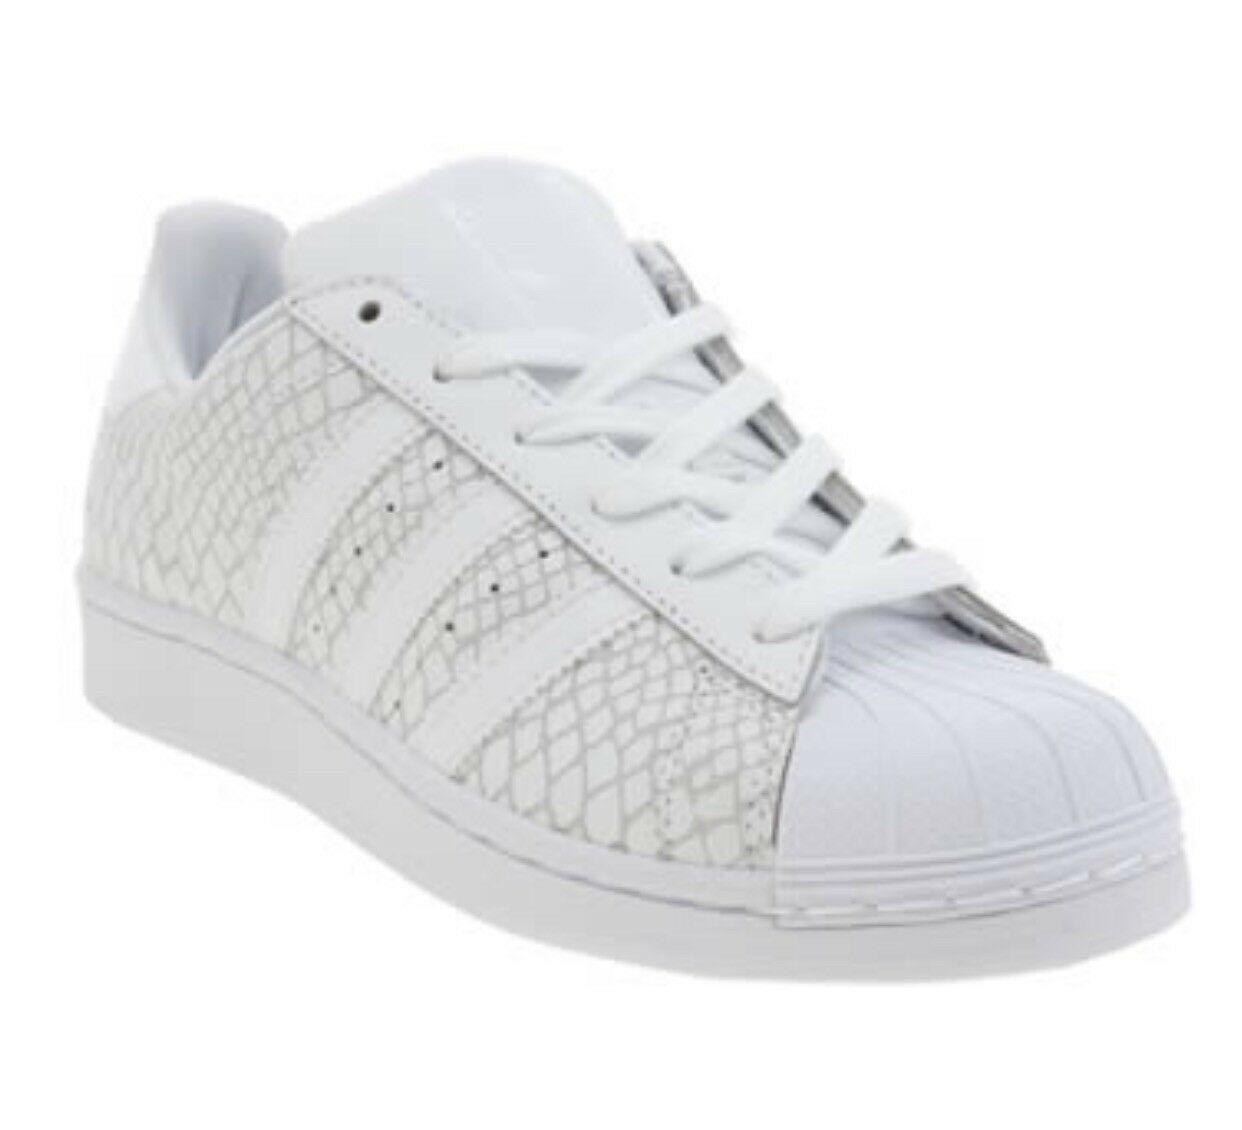 Original CrocoOptik Adidas Superstar Limited Edition CrocoOptik Original Gr.36,2/3 Sneakers TopStyle b3e6c7